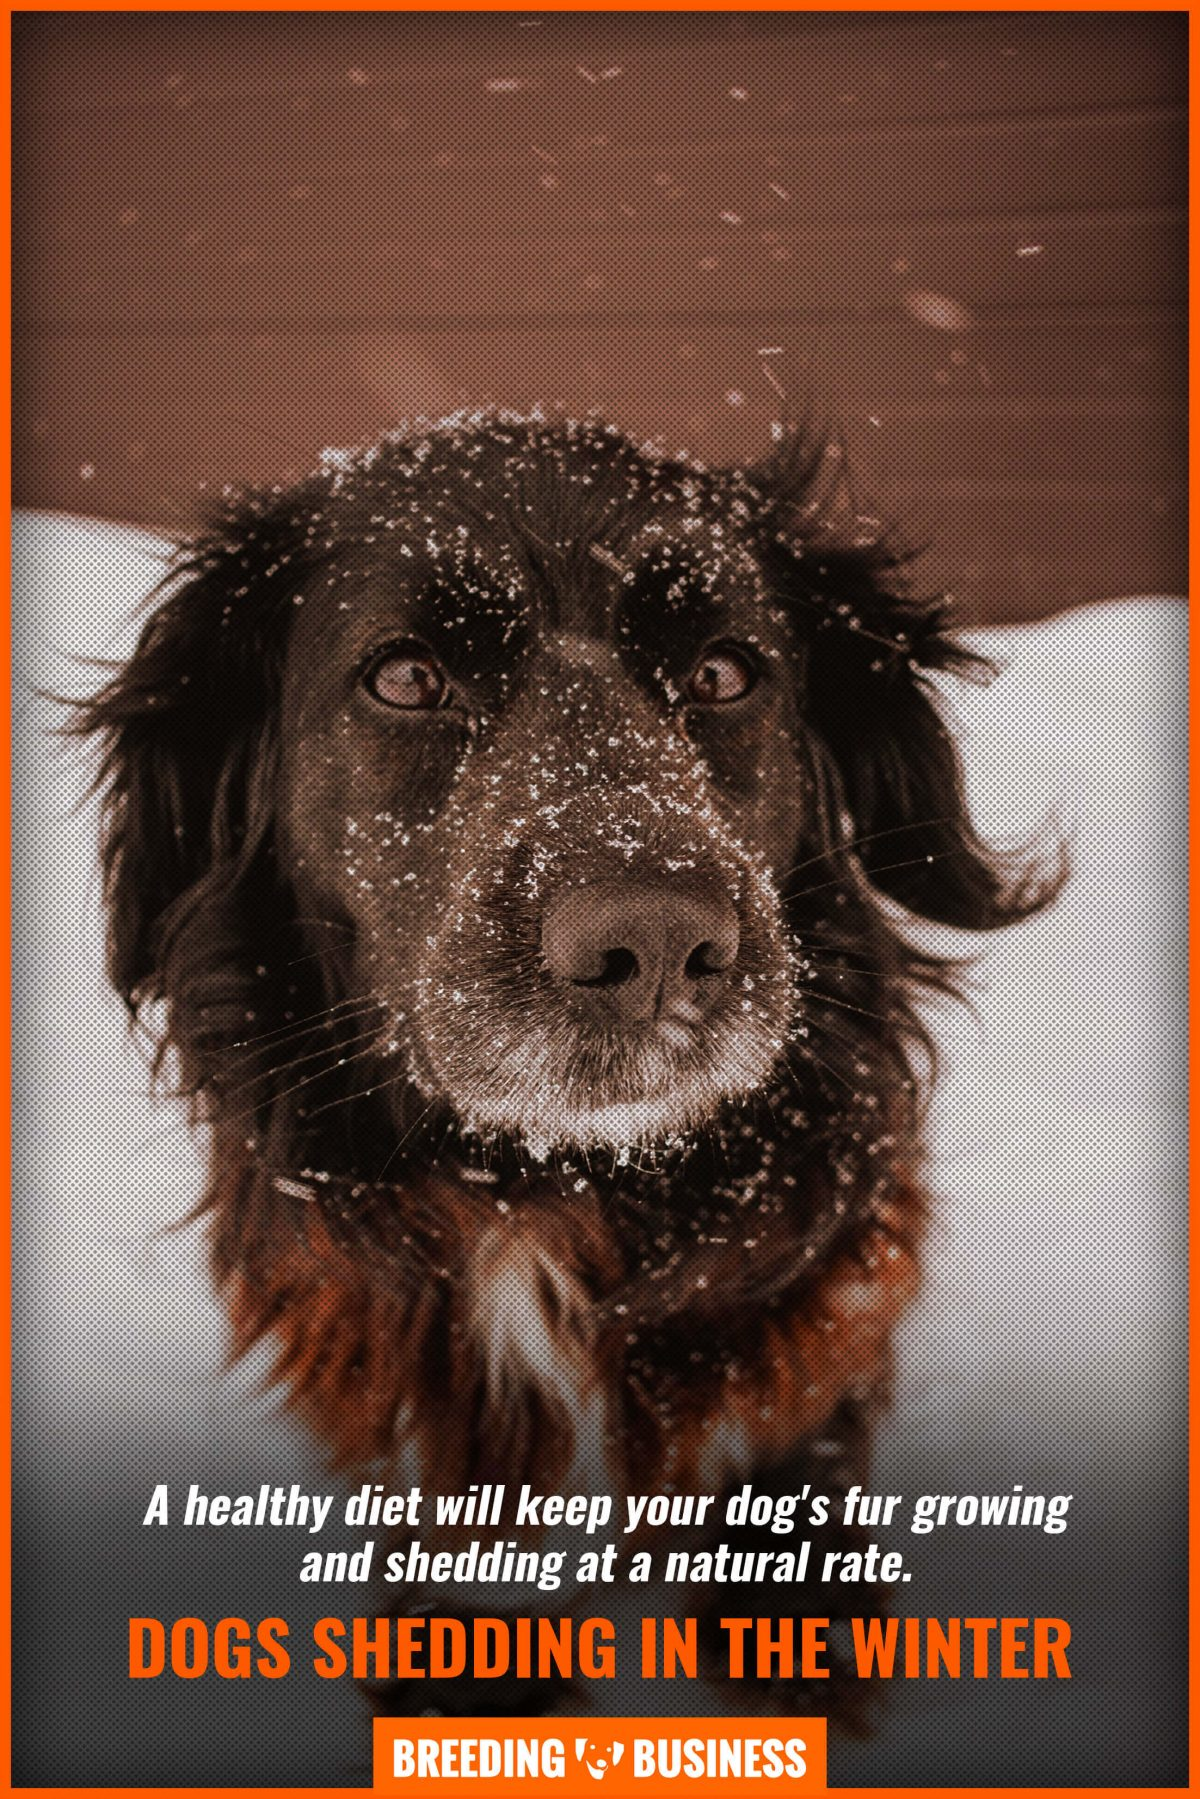 dogs shedding in the winter